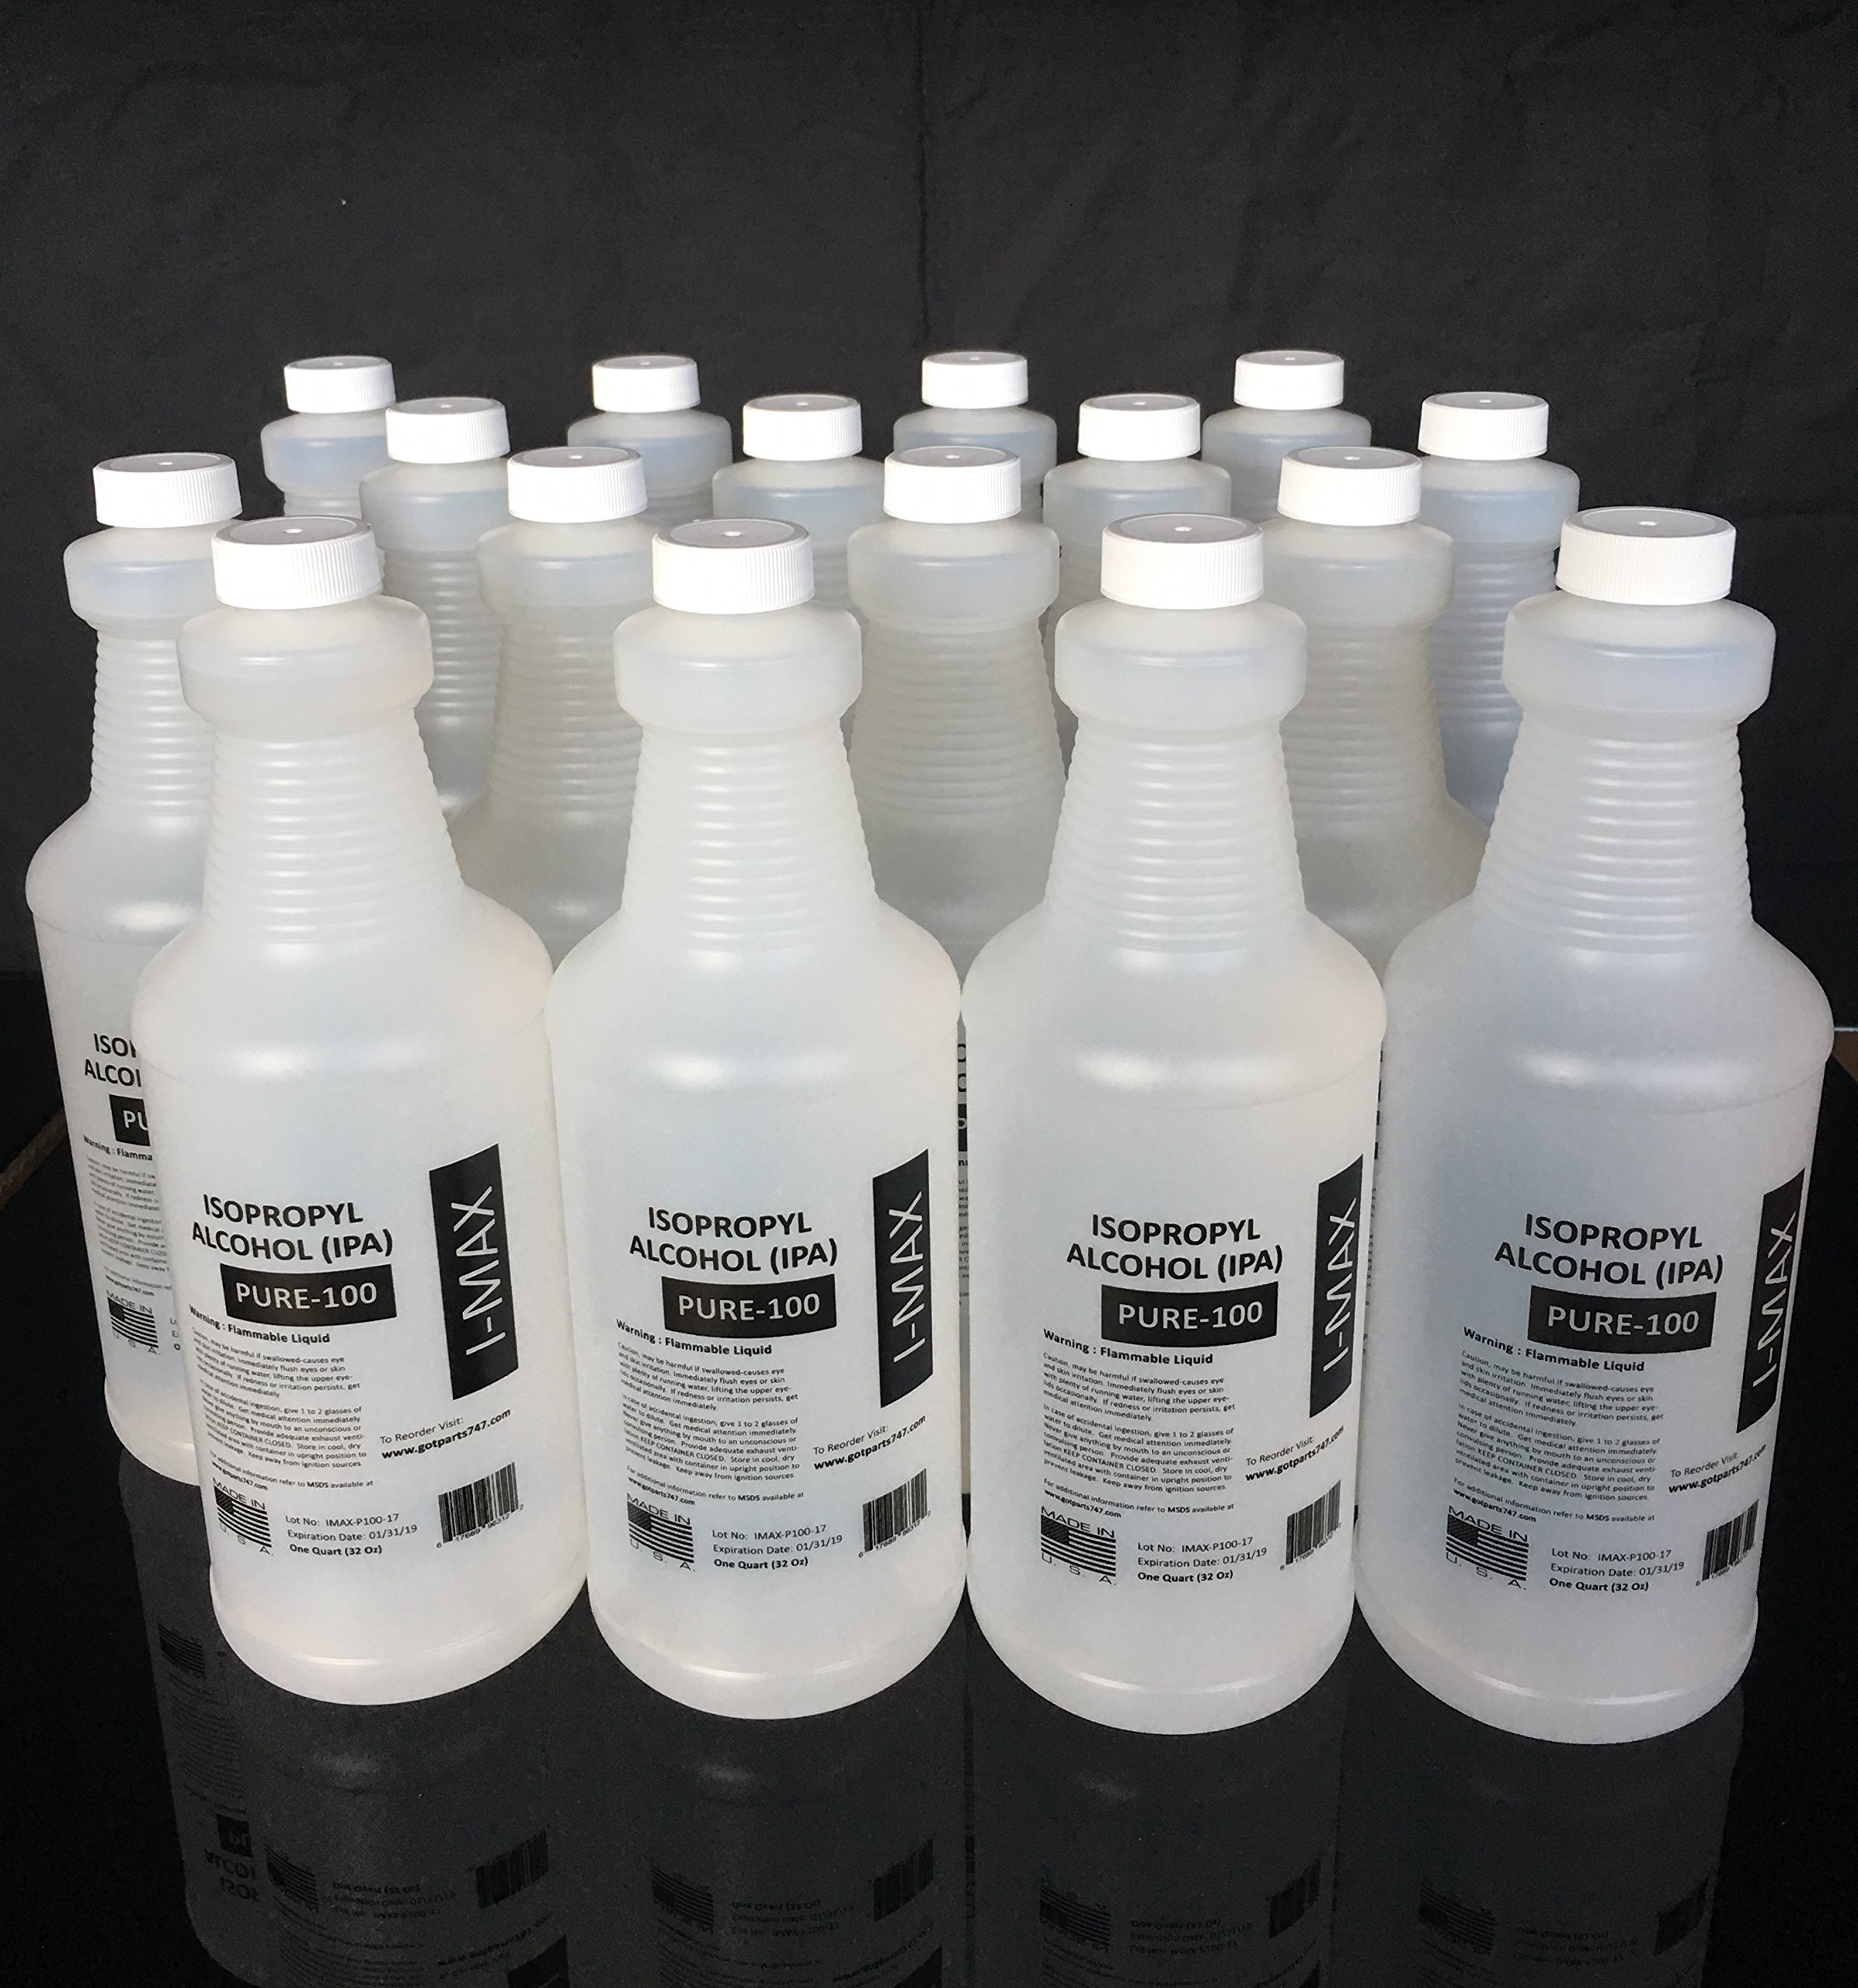 Isopropyl Alcohol 99.5+% - 4 Gallons (16 quarts) 100% Purity - Rubbing Alcohol